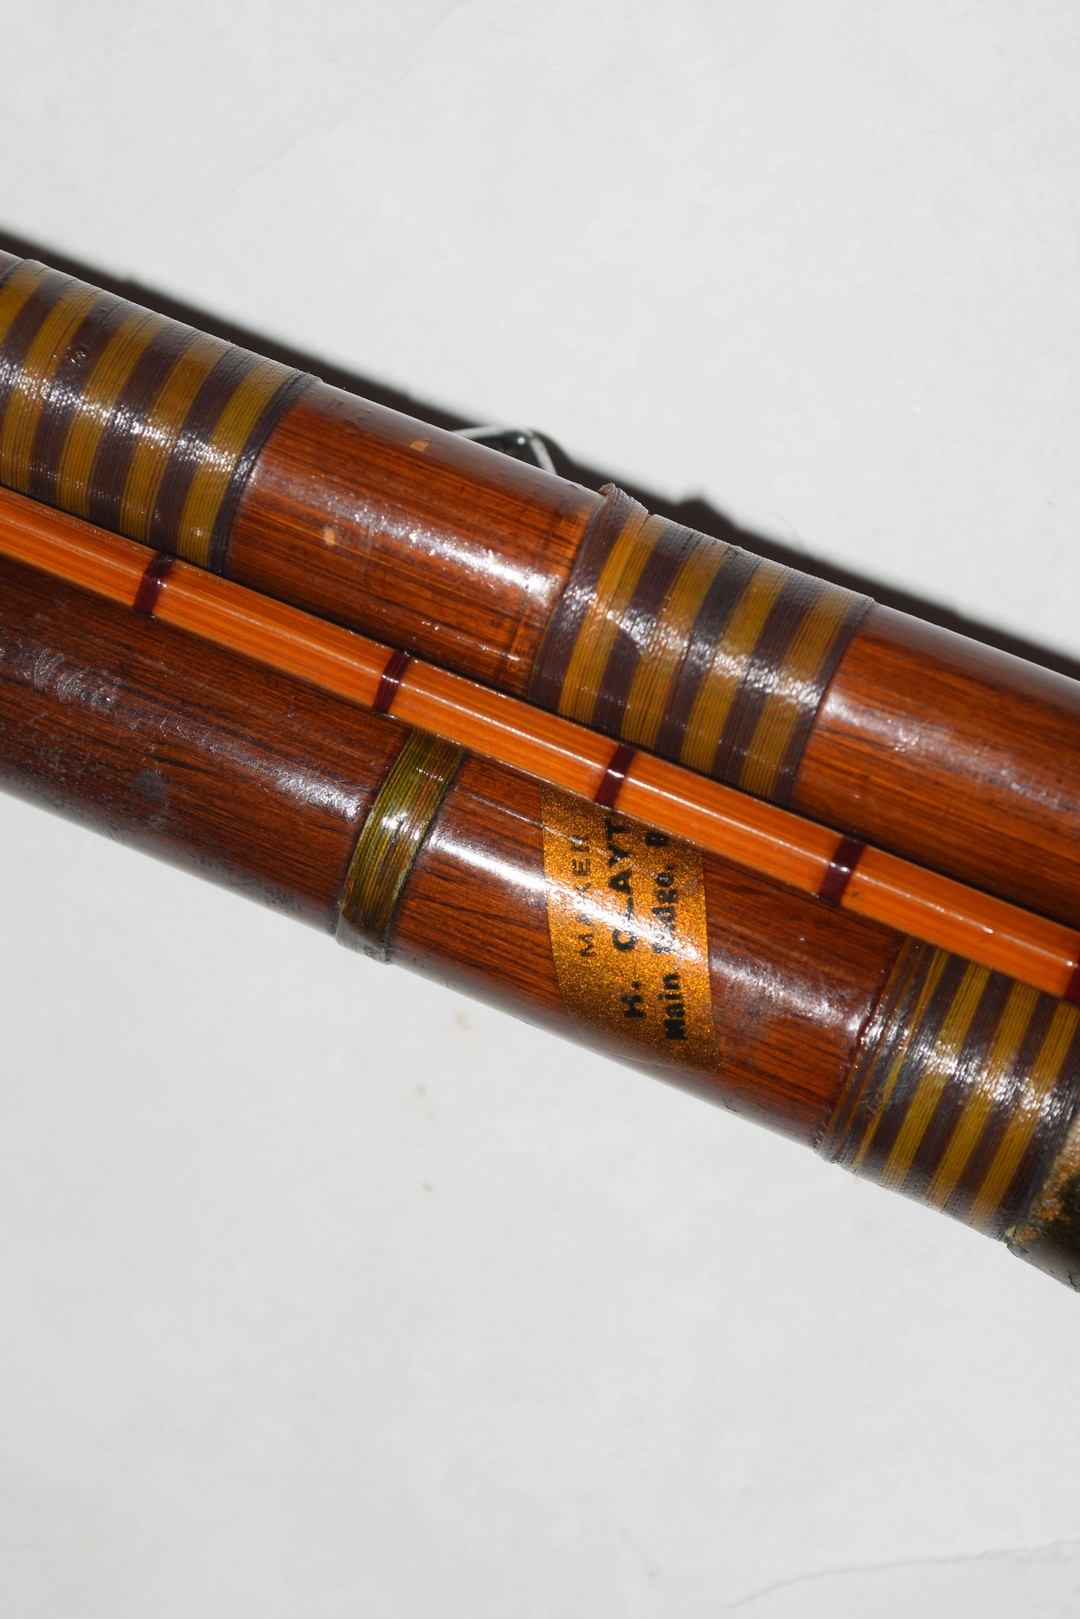 Vintage three-piece fibre glass and cane fishing rod - Image 4 of 4